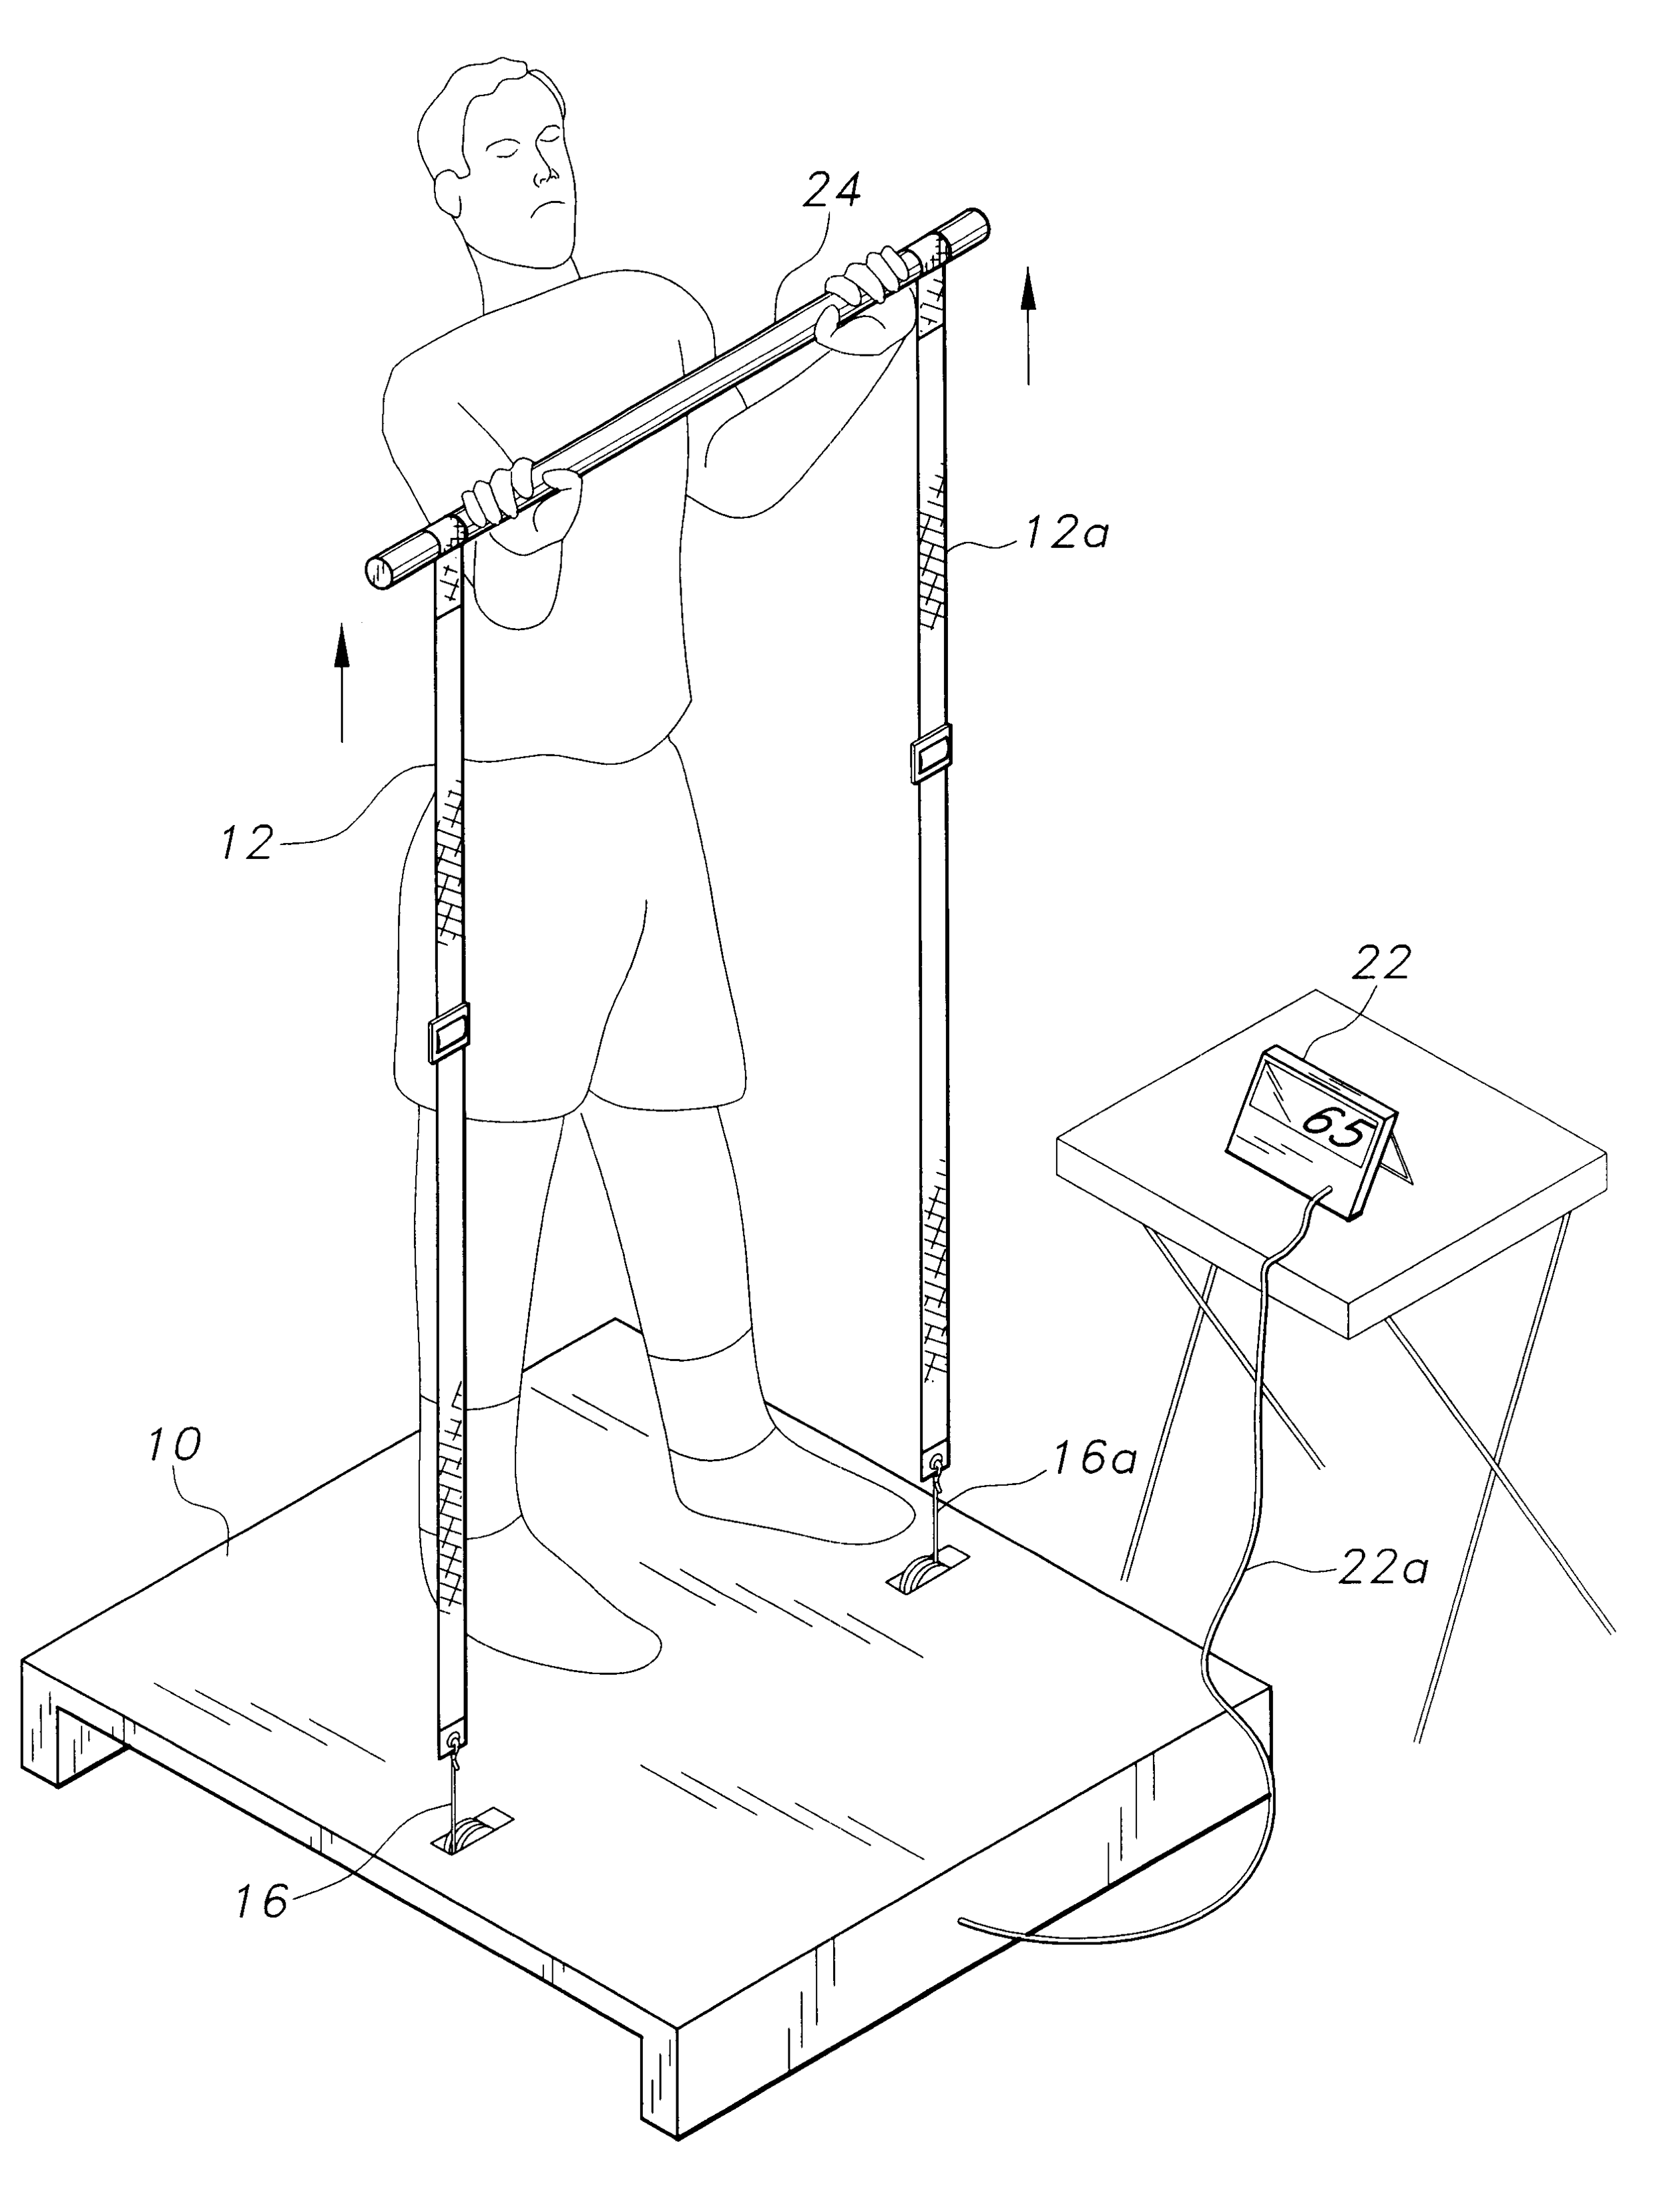 Patent Illustration for Portable Lightweight Home and Travel Gym from  Google.